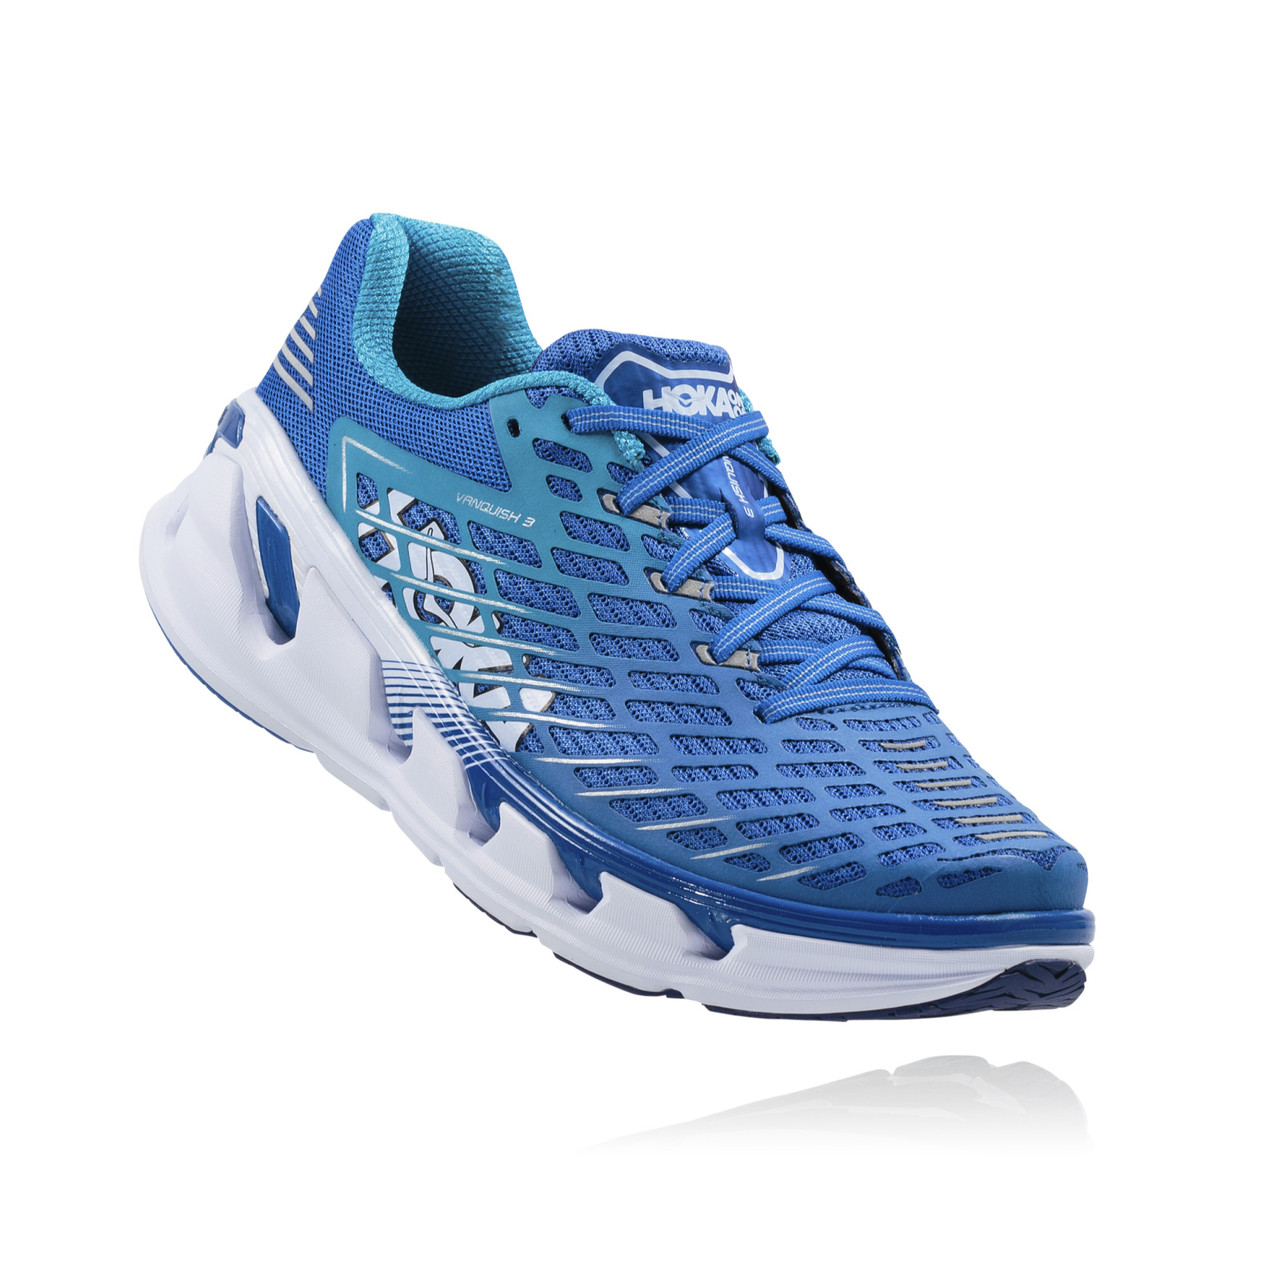 Hoka One One Men's Vanquish 3 Neutral Shoe - 2017 price